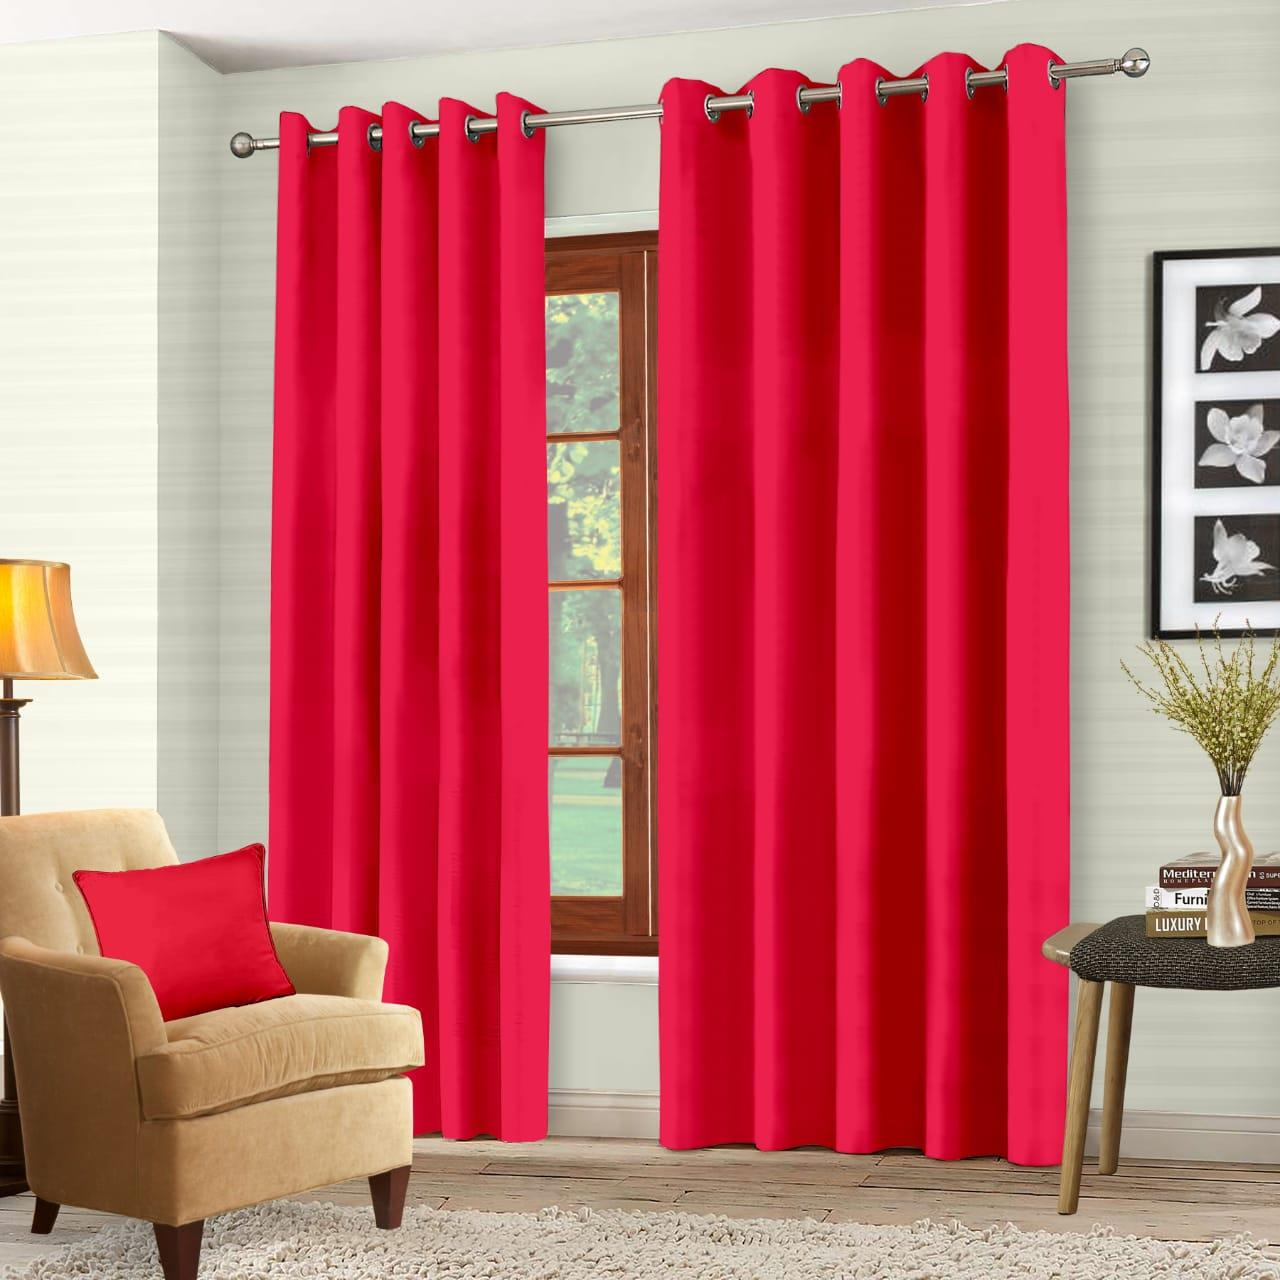 Luxury-Thermal-Blackout-Eyelet-Ring-Top-Curtains-Pair-with-tie-backs thumbnail 38